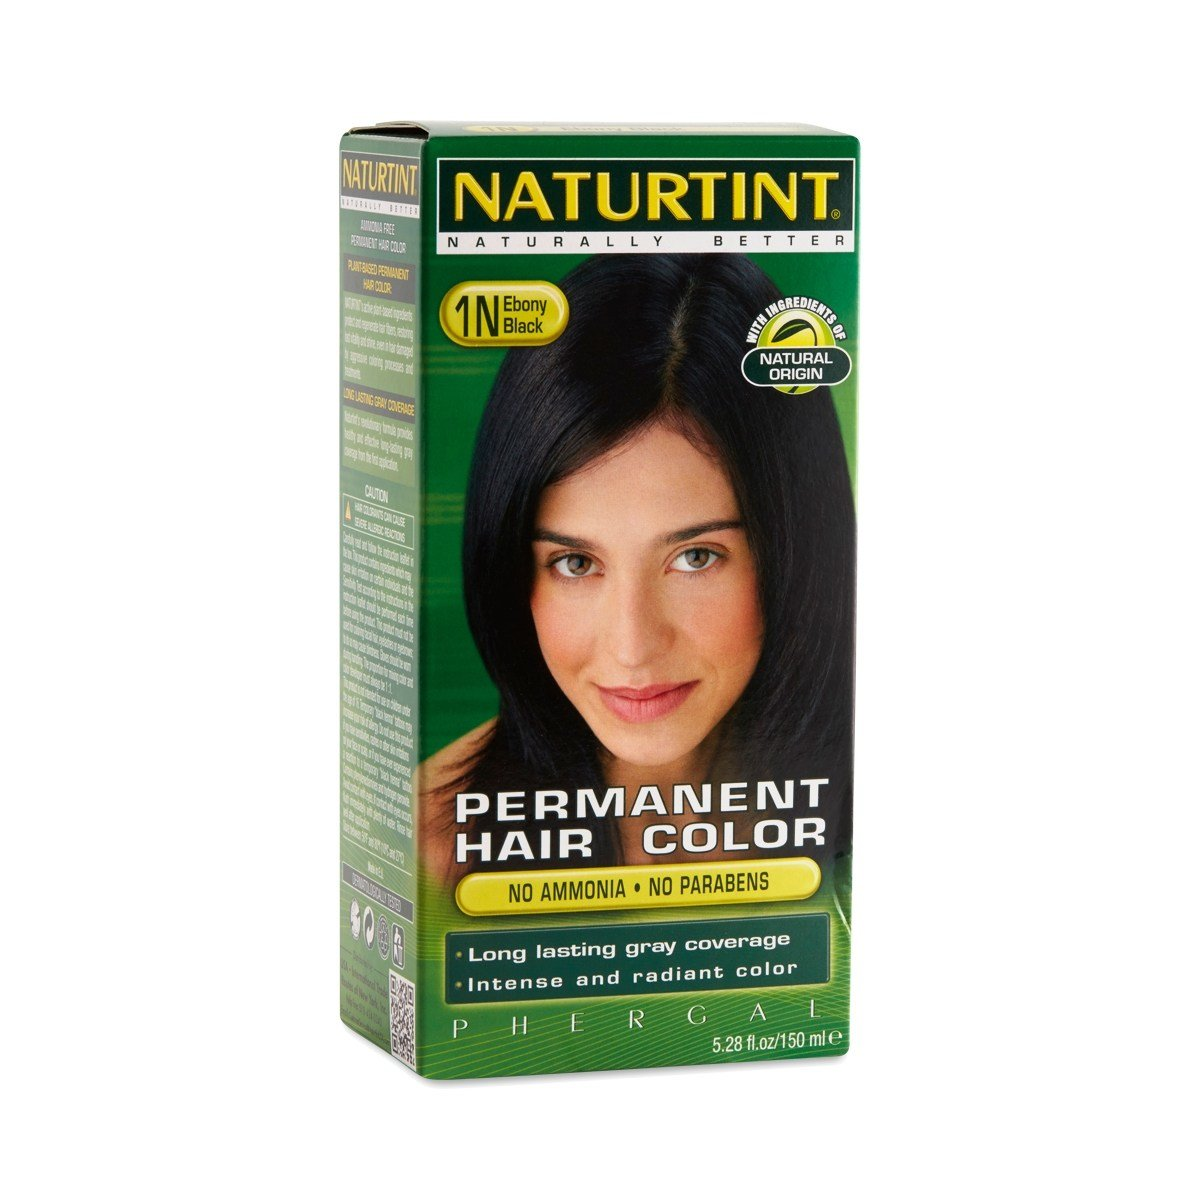 The Best Ebony Black 1N Permanent Hair Color By Naturtint Thrive Pictures